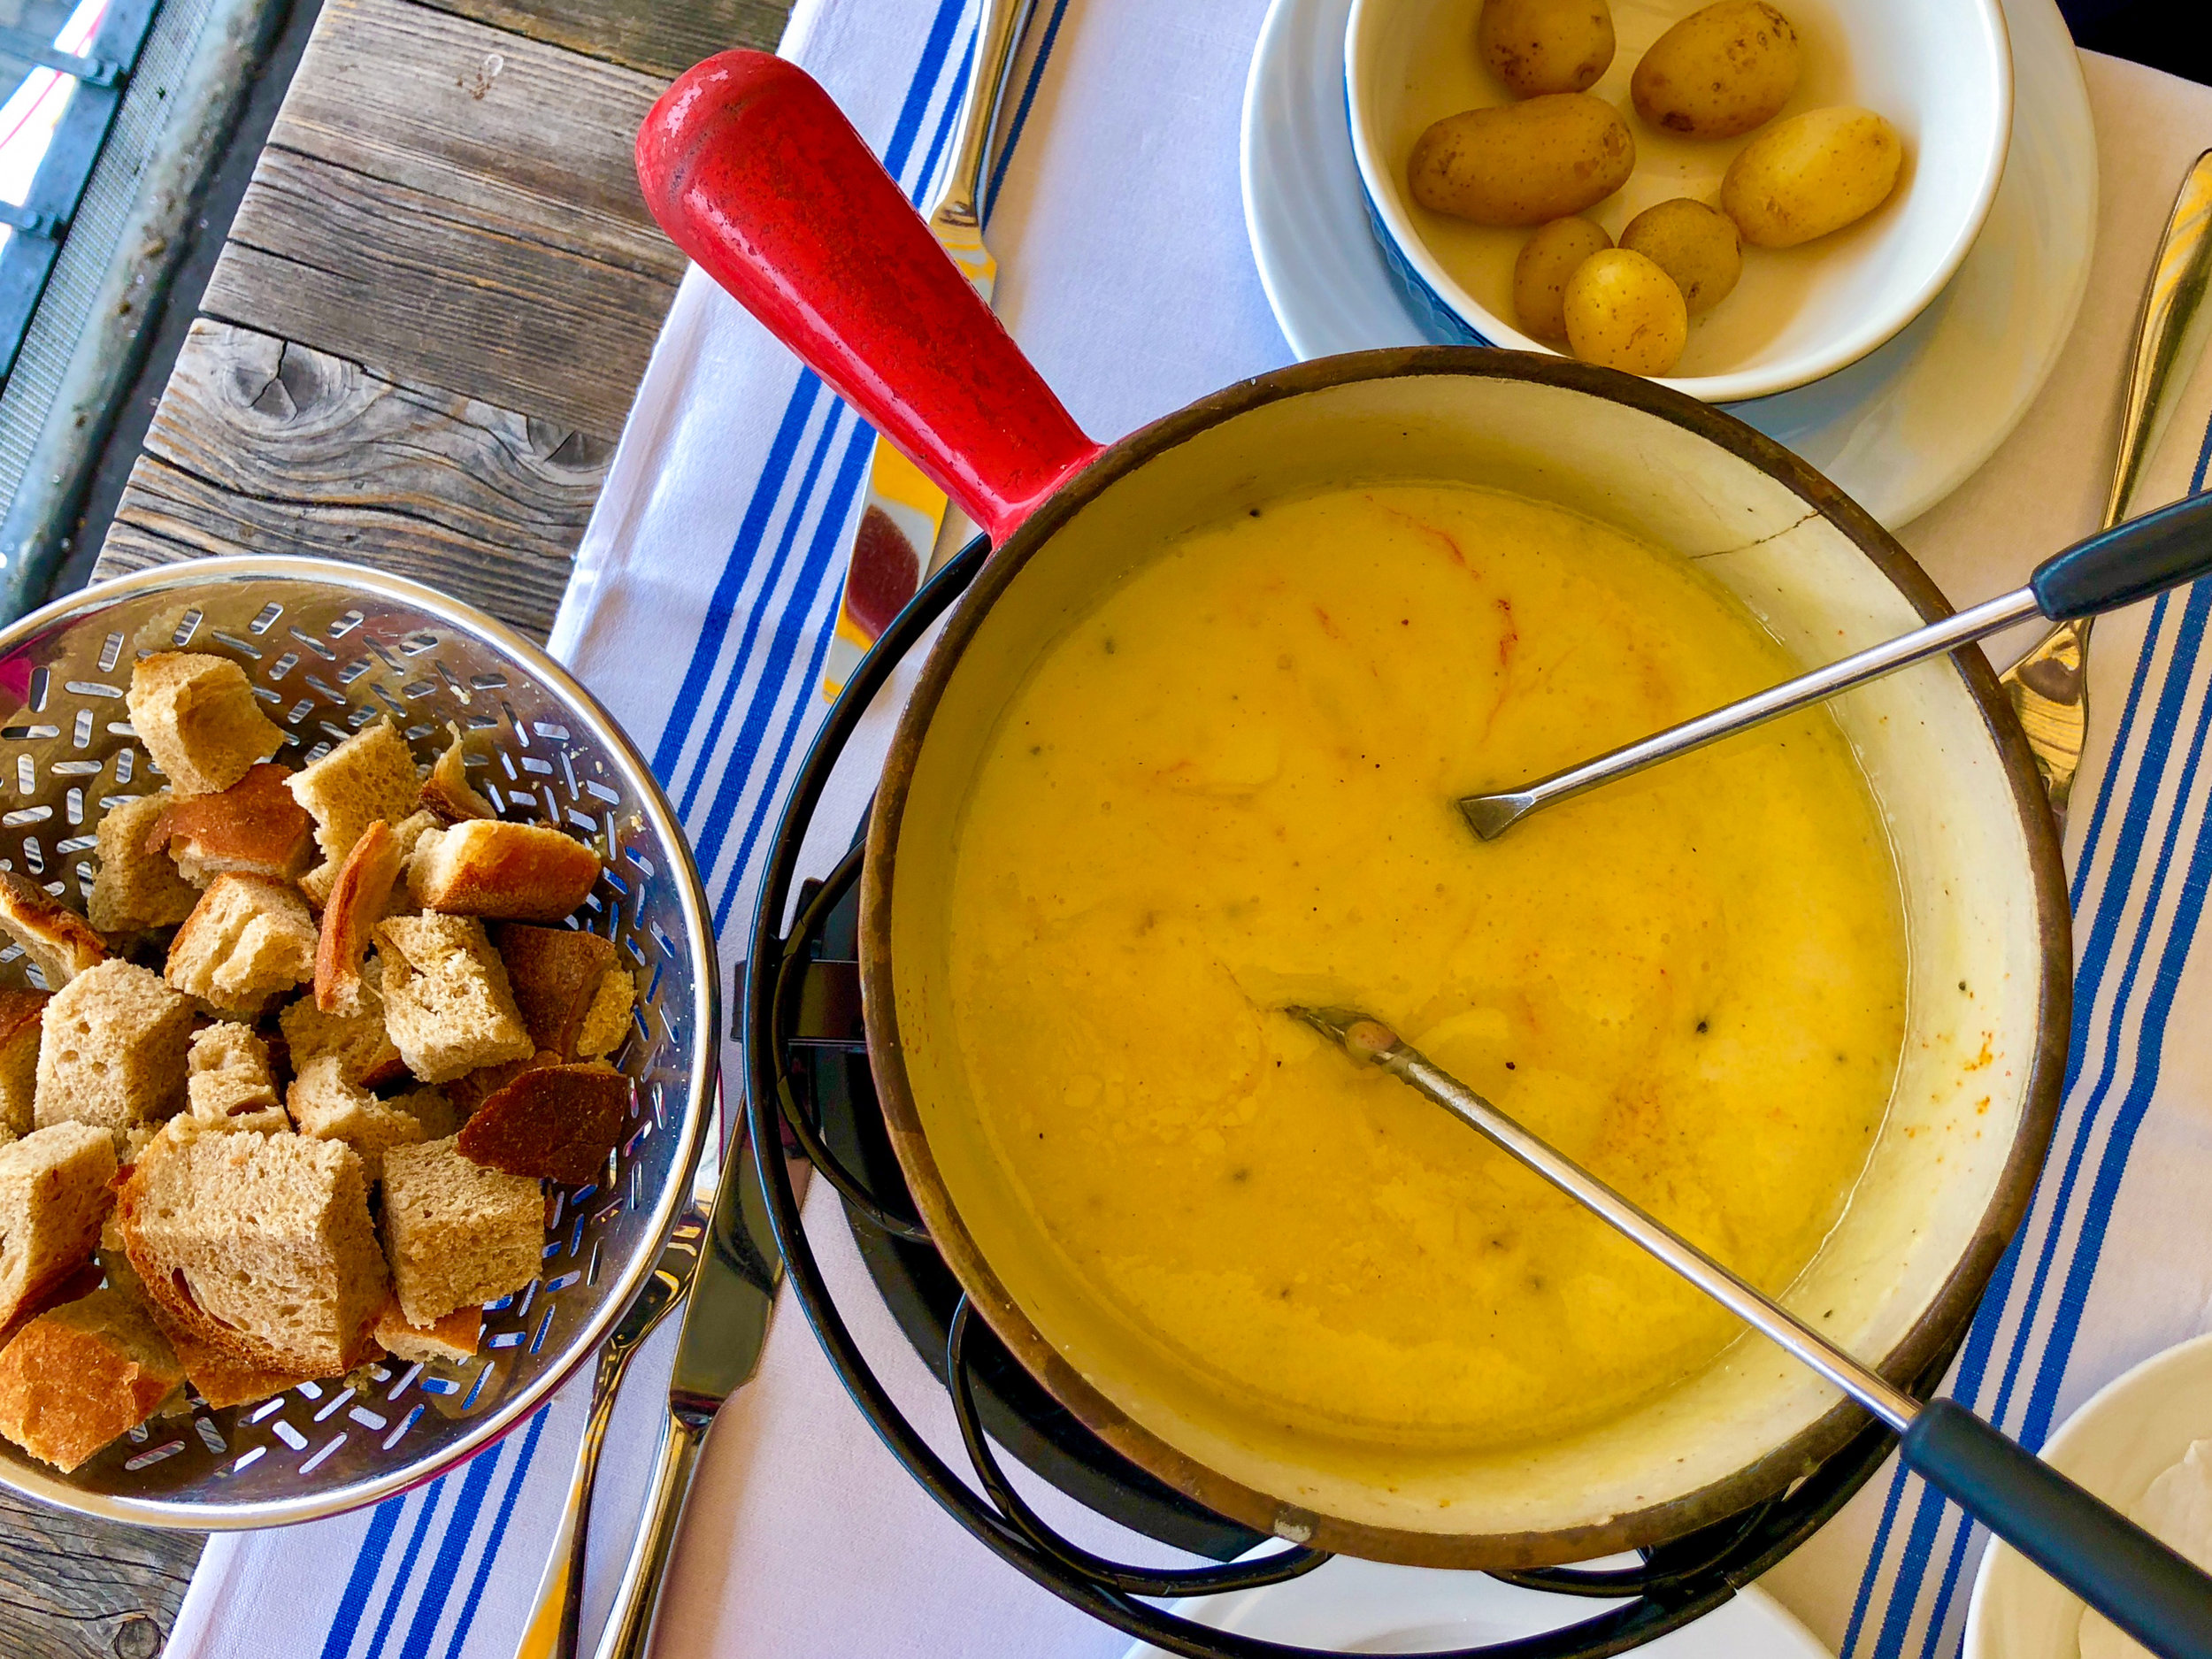 Fondue Ready To Eat.jpg